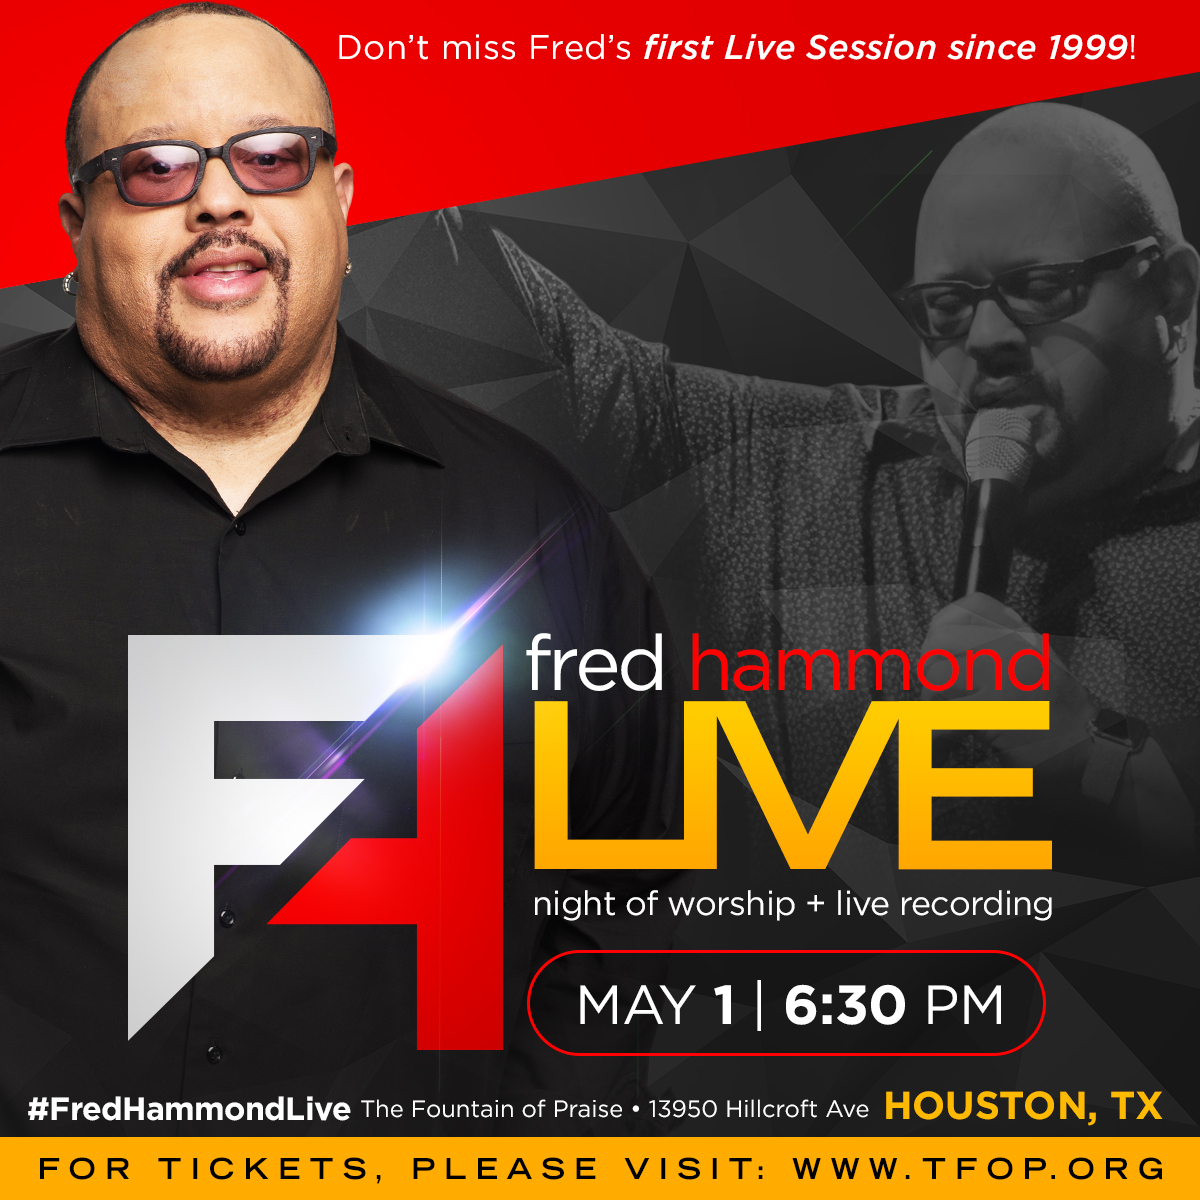 Gospel Icon Fred Hammond Hosts Live Recording on May 1st [@RealFredHammond]